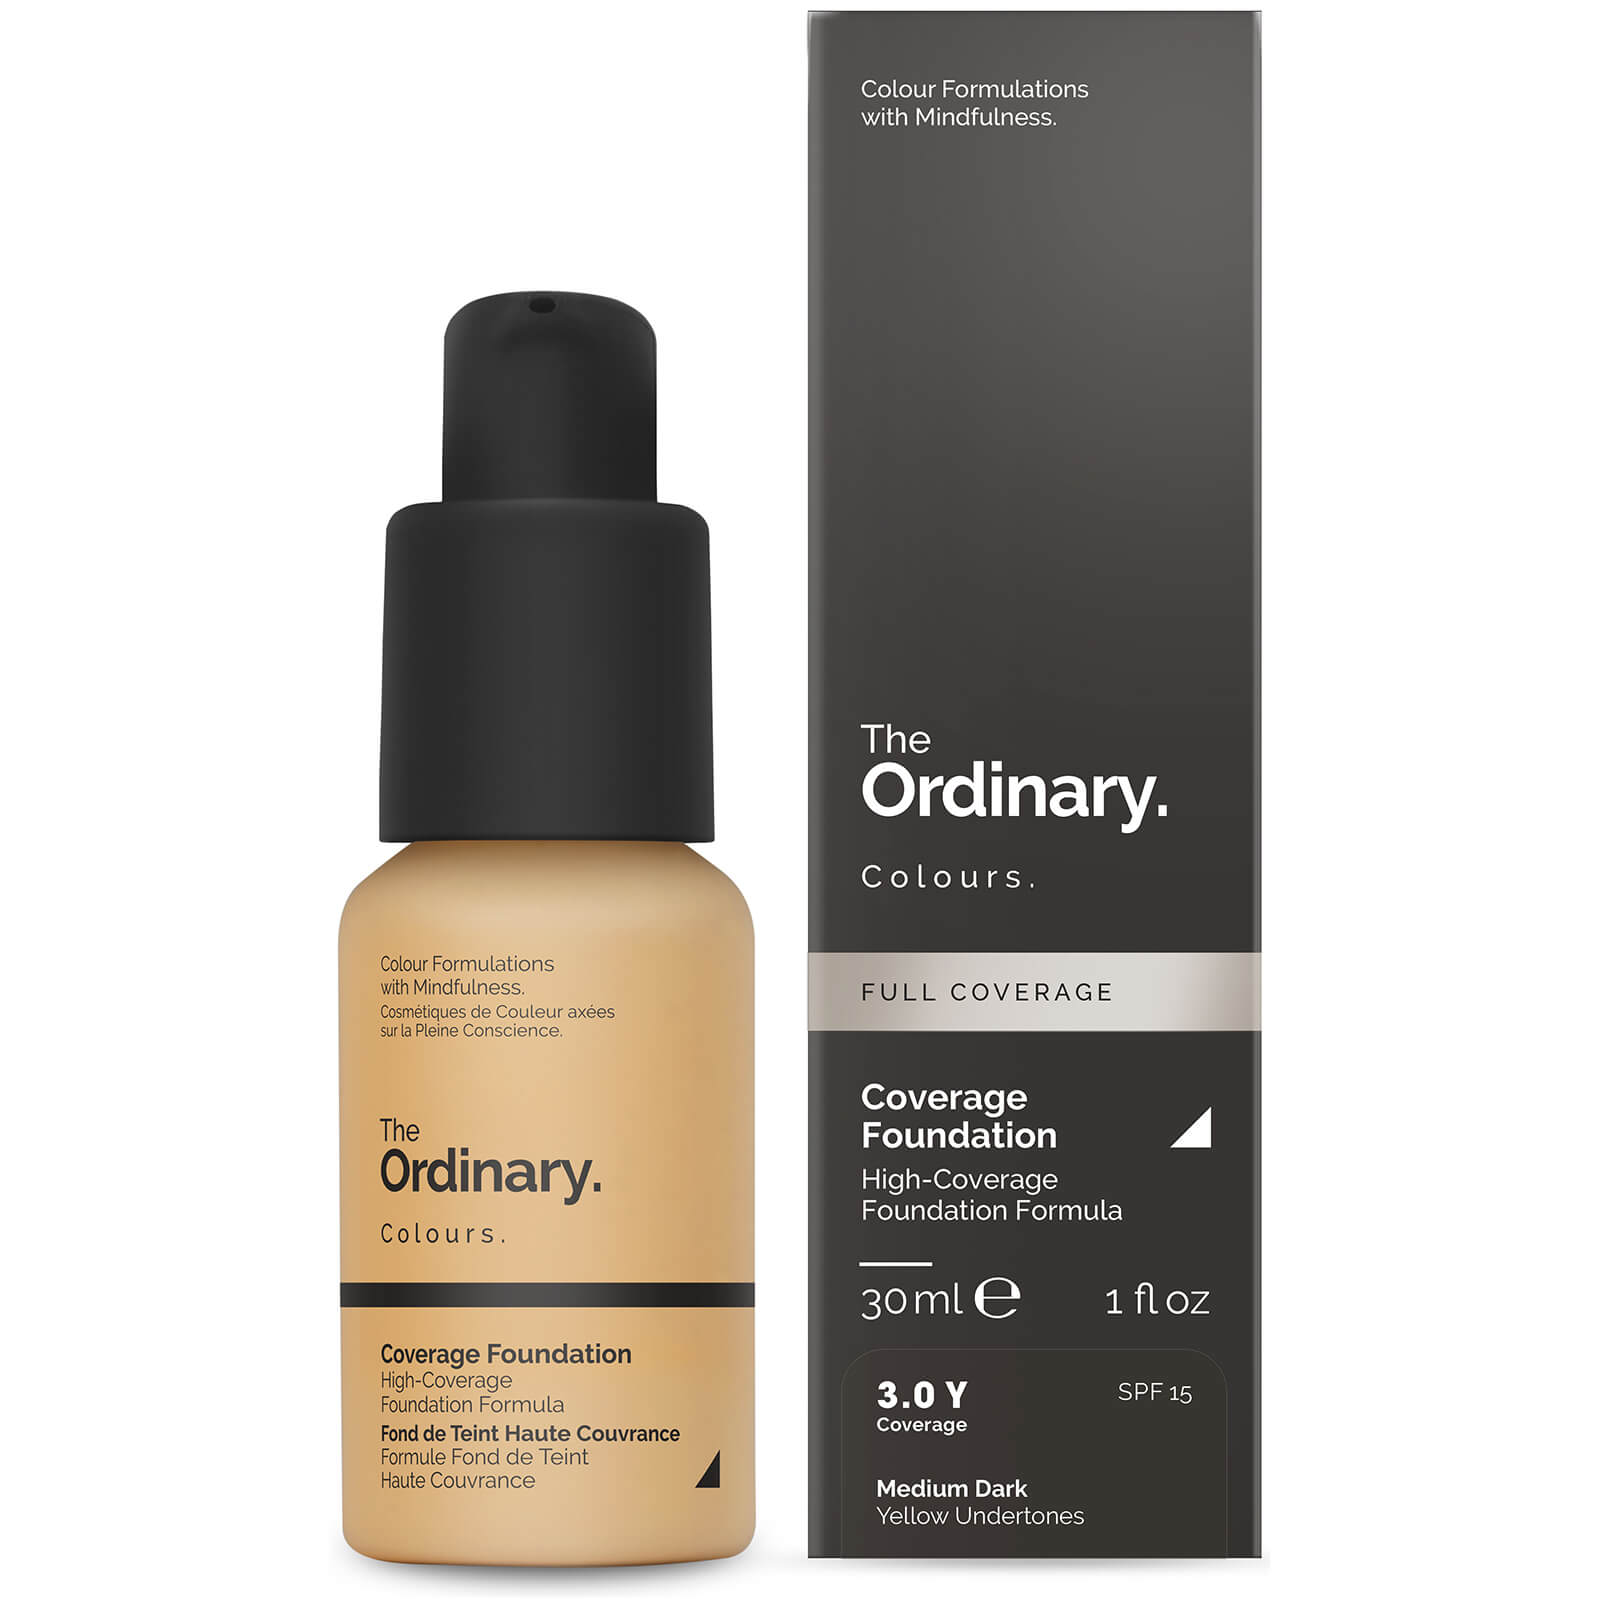 The Ordinary Coverage Foundation with SPF 15 by The Ordinary Colours 30ml (Various Shades) - 3.0Y